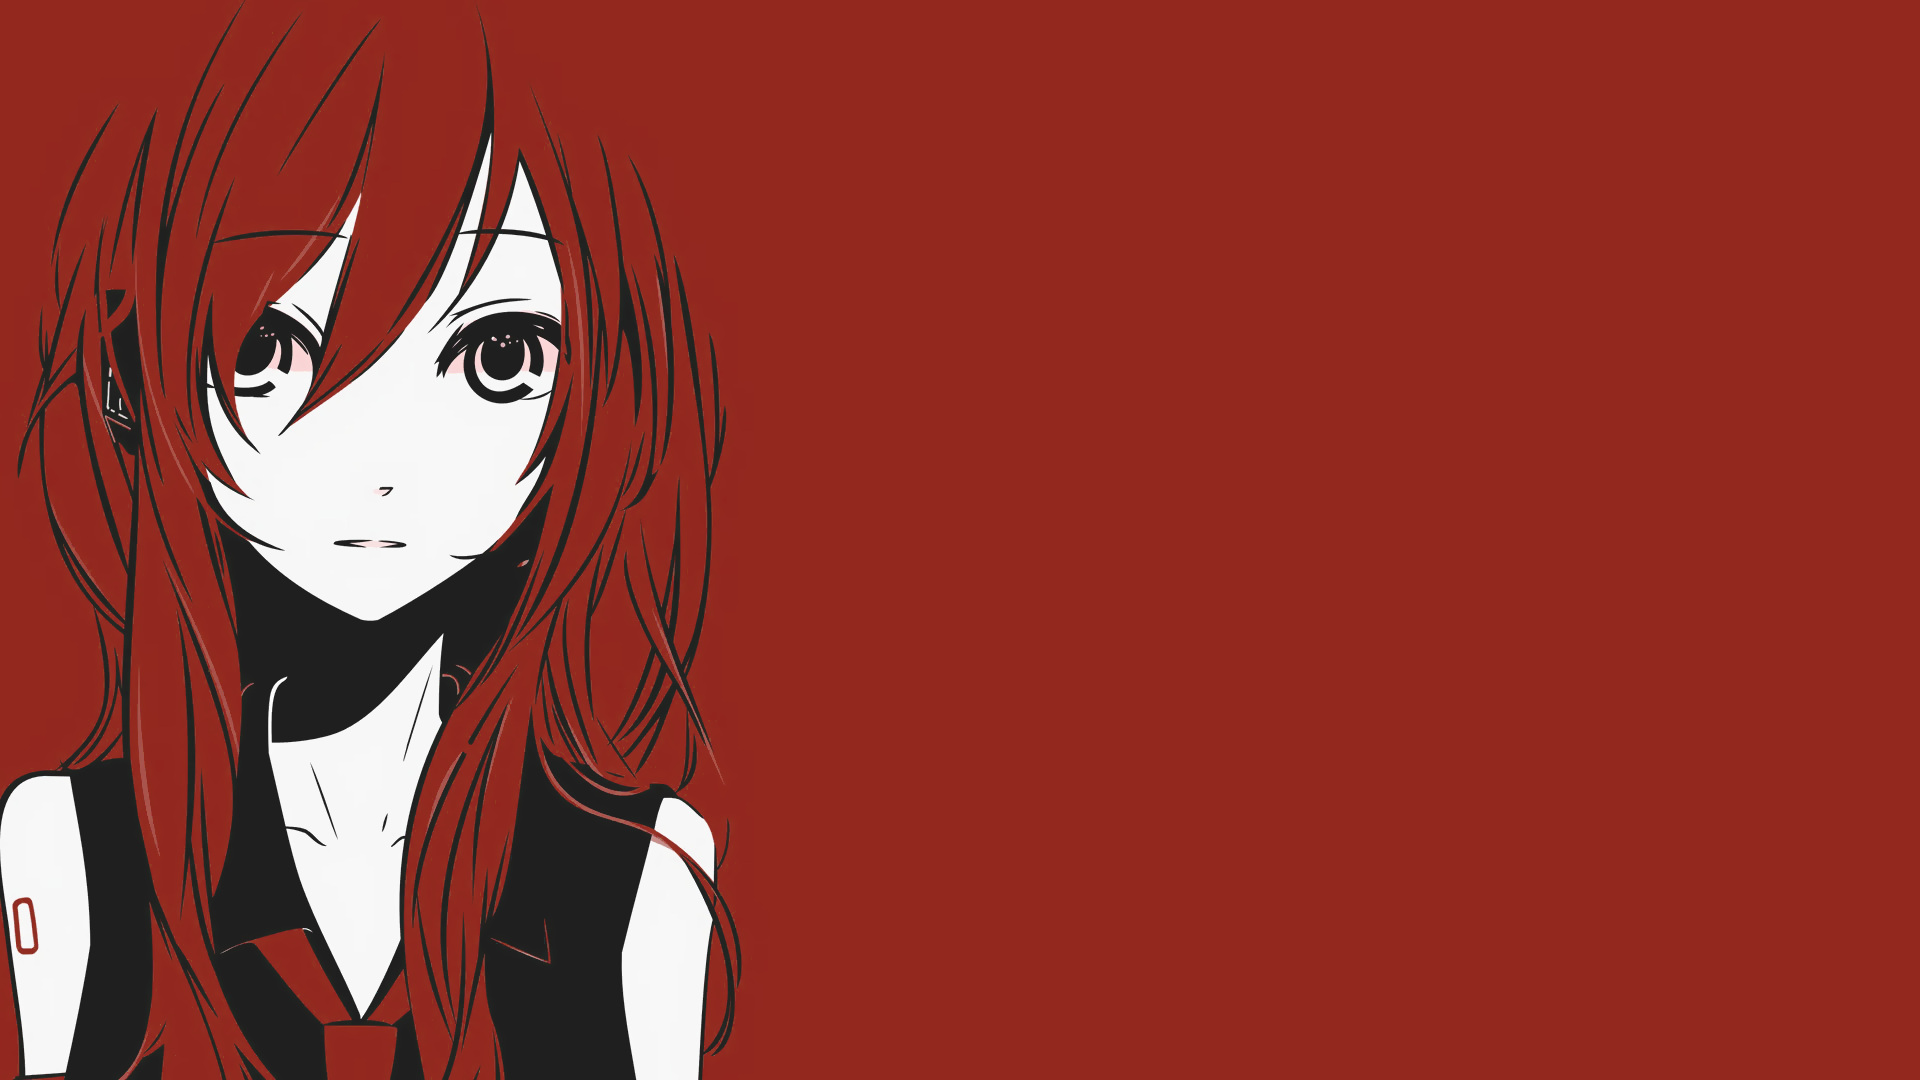 Red Anime Wallpaper Hd Anime Top Wallpaper